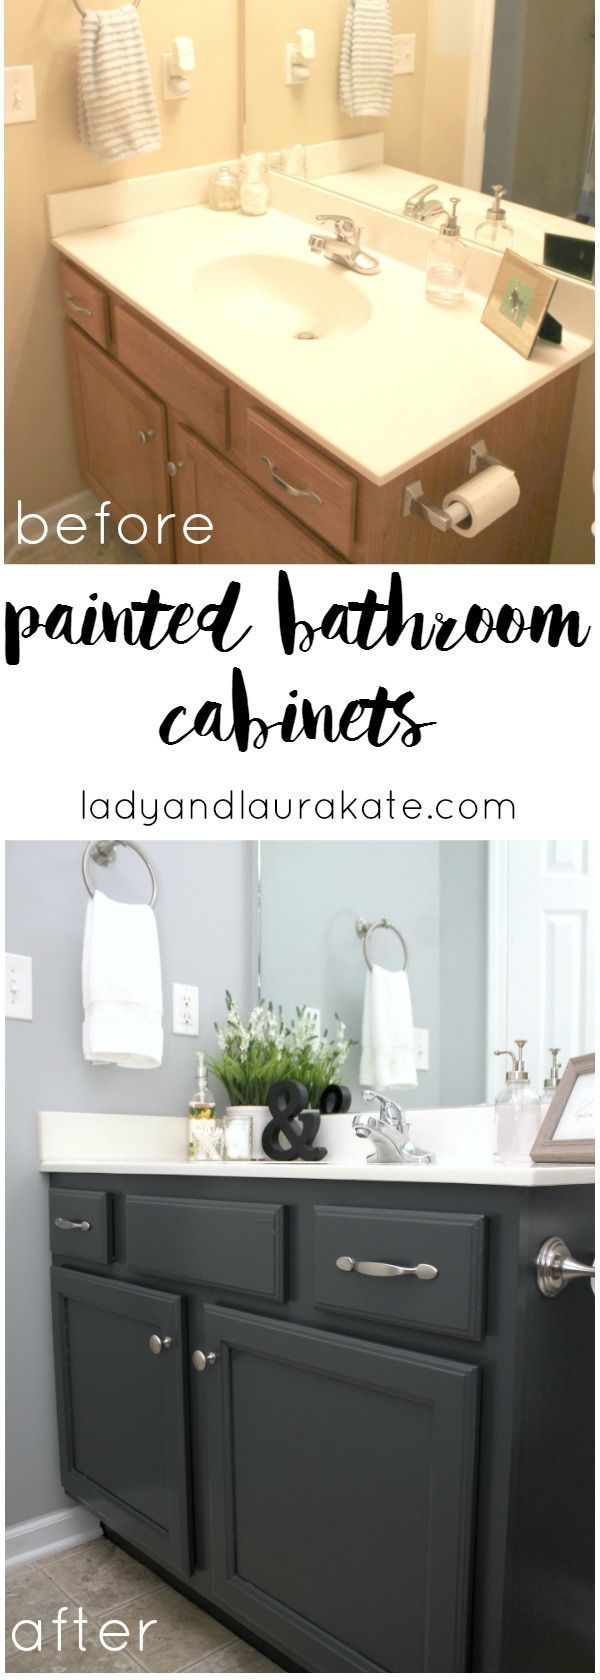 25 Best Ideas About Bathroom Cabinets On Pinterest Bathroom Sinks Under Sink Storage And Master Bathrooms